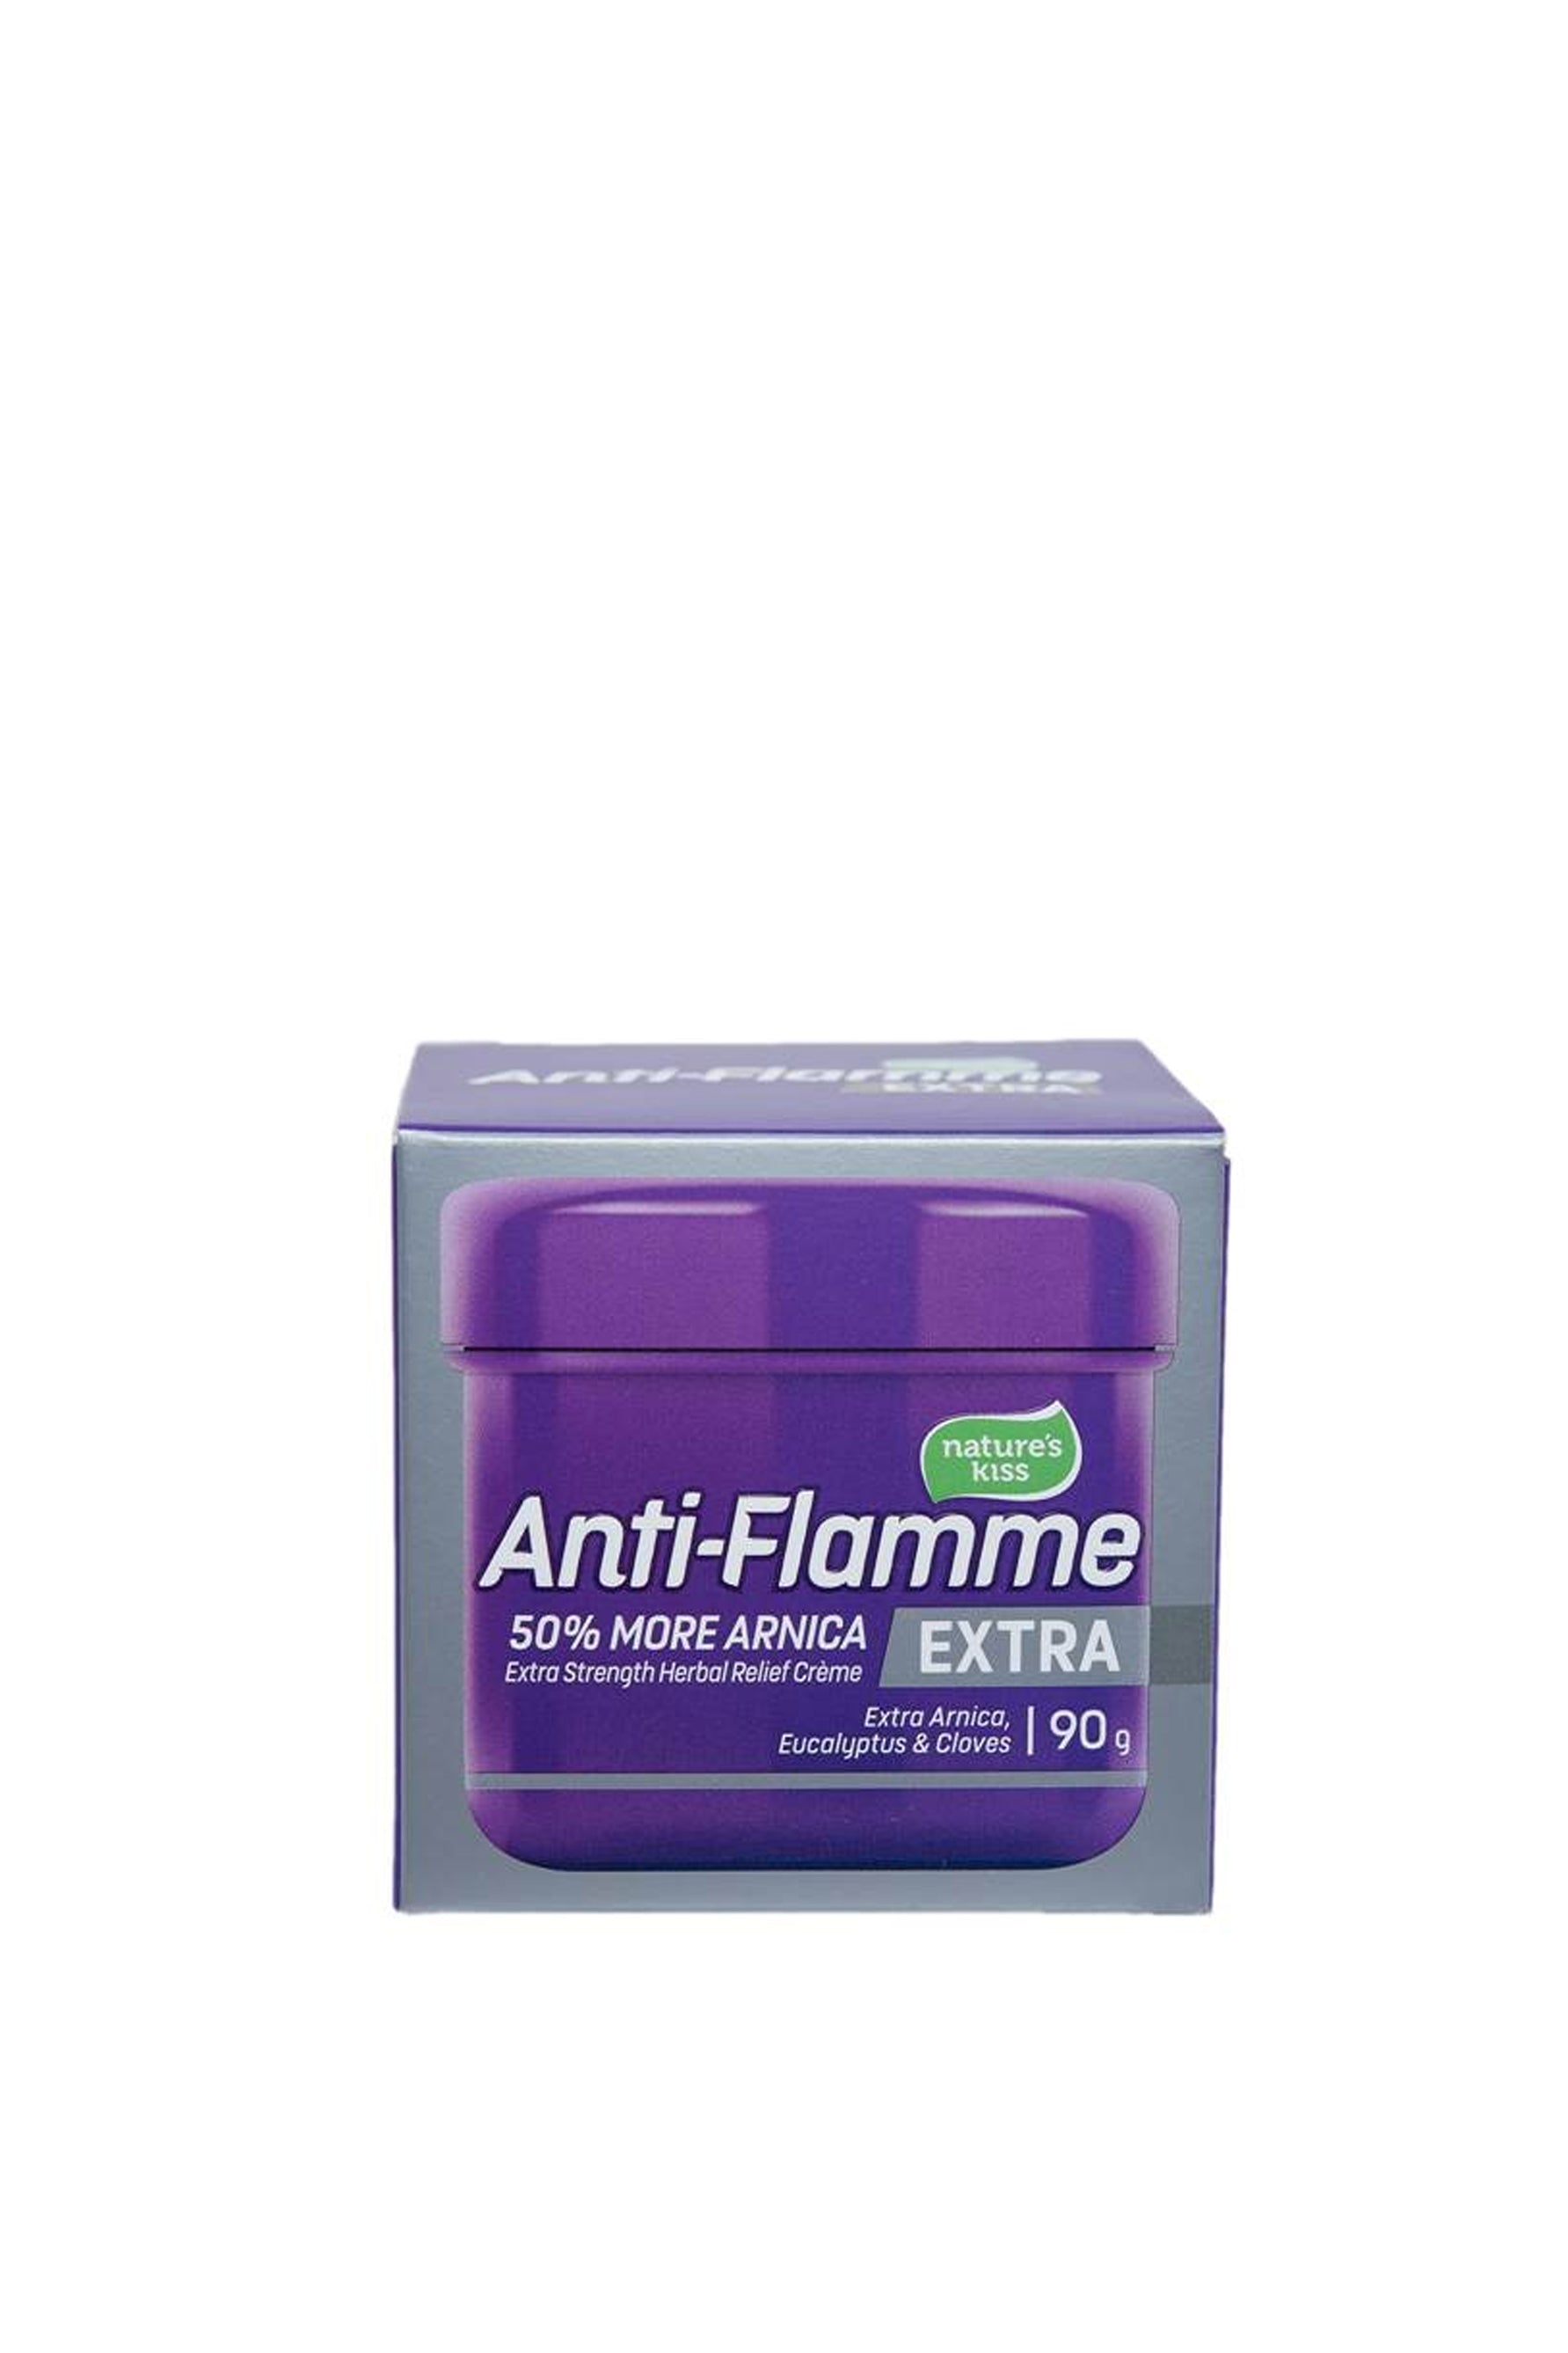 Anti-Flamme Extra Creme 90g - Life Pharmacy St Lukes